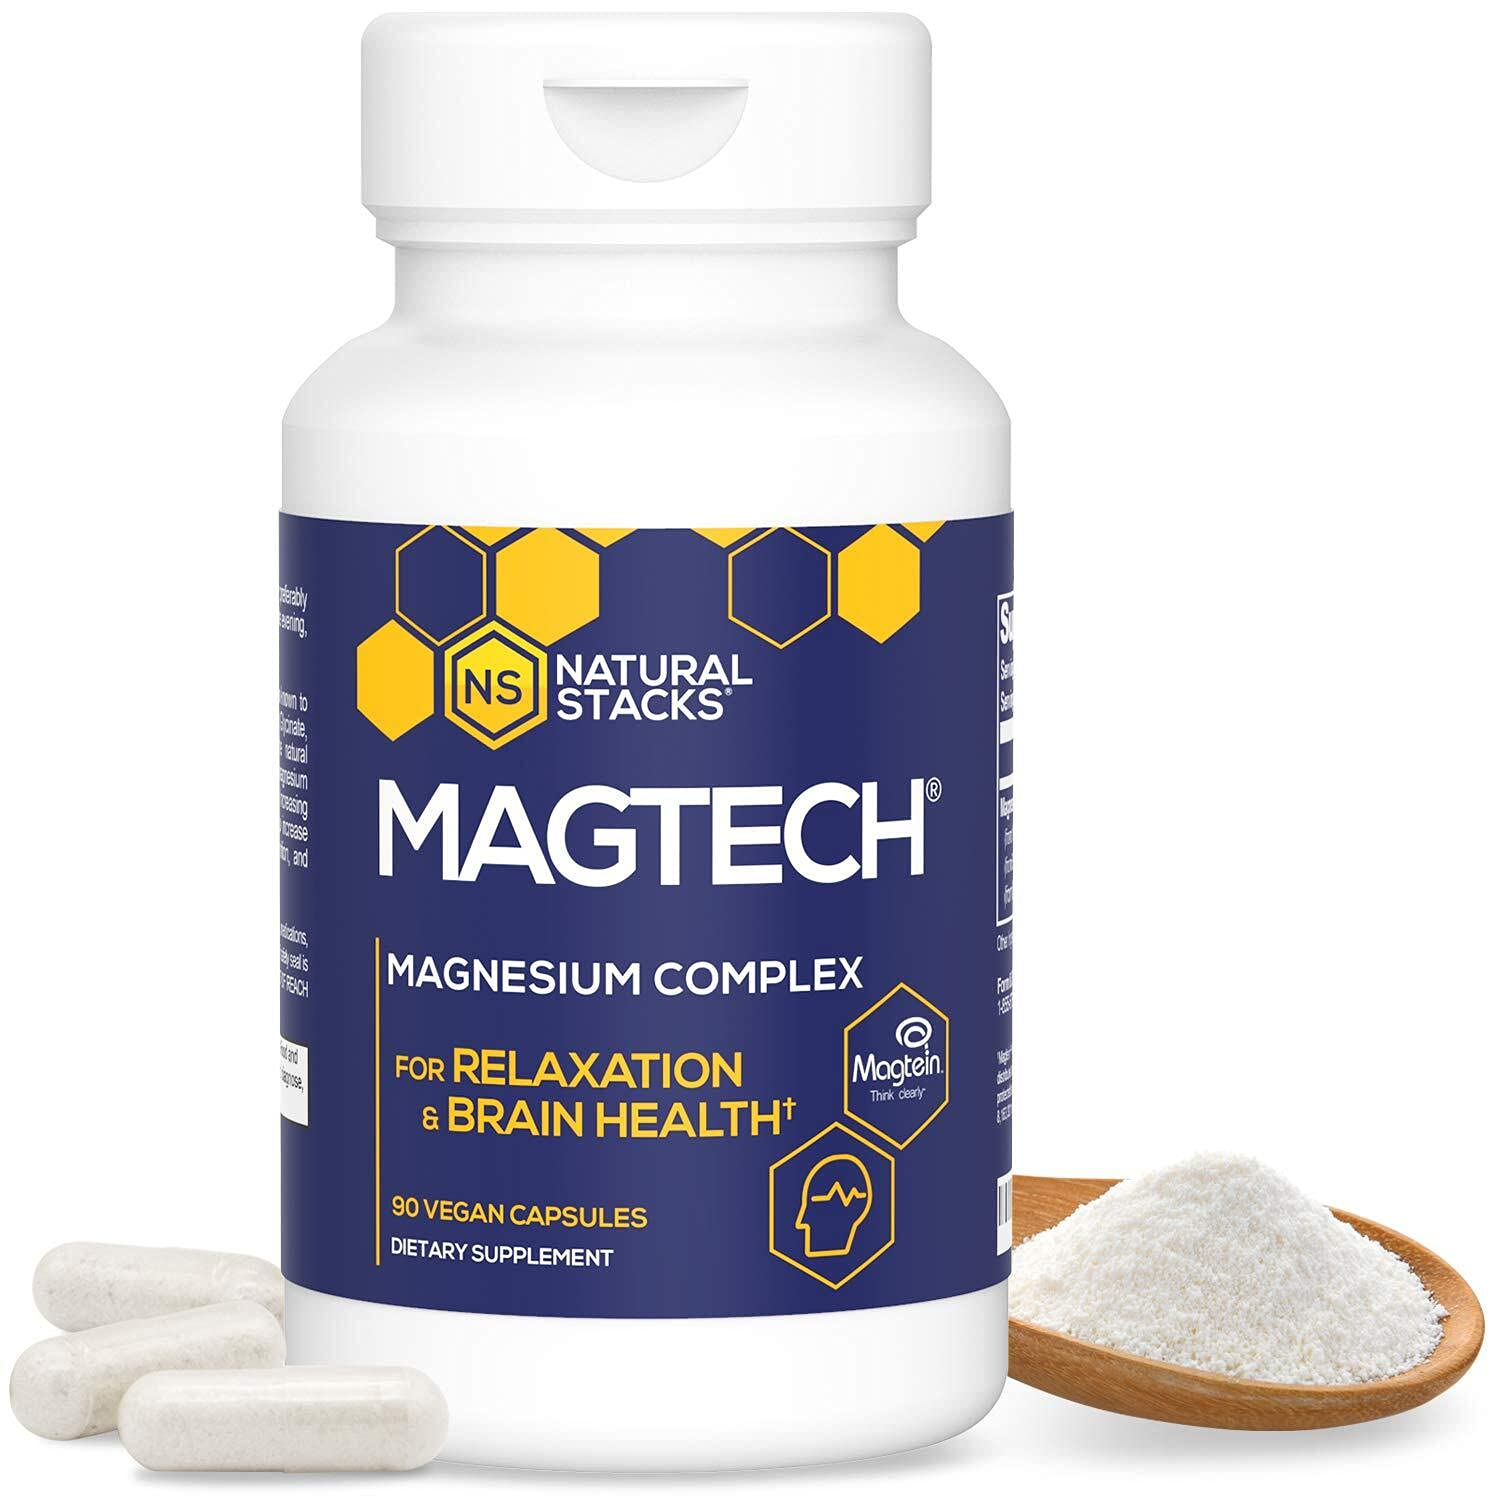 Natural Stacks MagTech Magnesium Supplement 90 ct. - High Quality Triple Blended 100% Chelated Magnesium Complex - L-Threonate (Magtein) for Memory & Focus - Glycinate for Sleep & Relaxation - Taurate for Muscle Cramps & Recovery